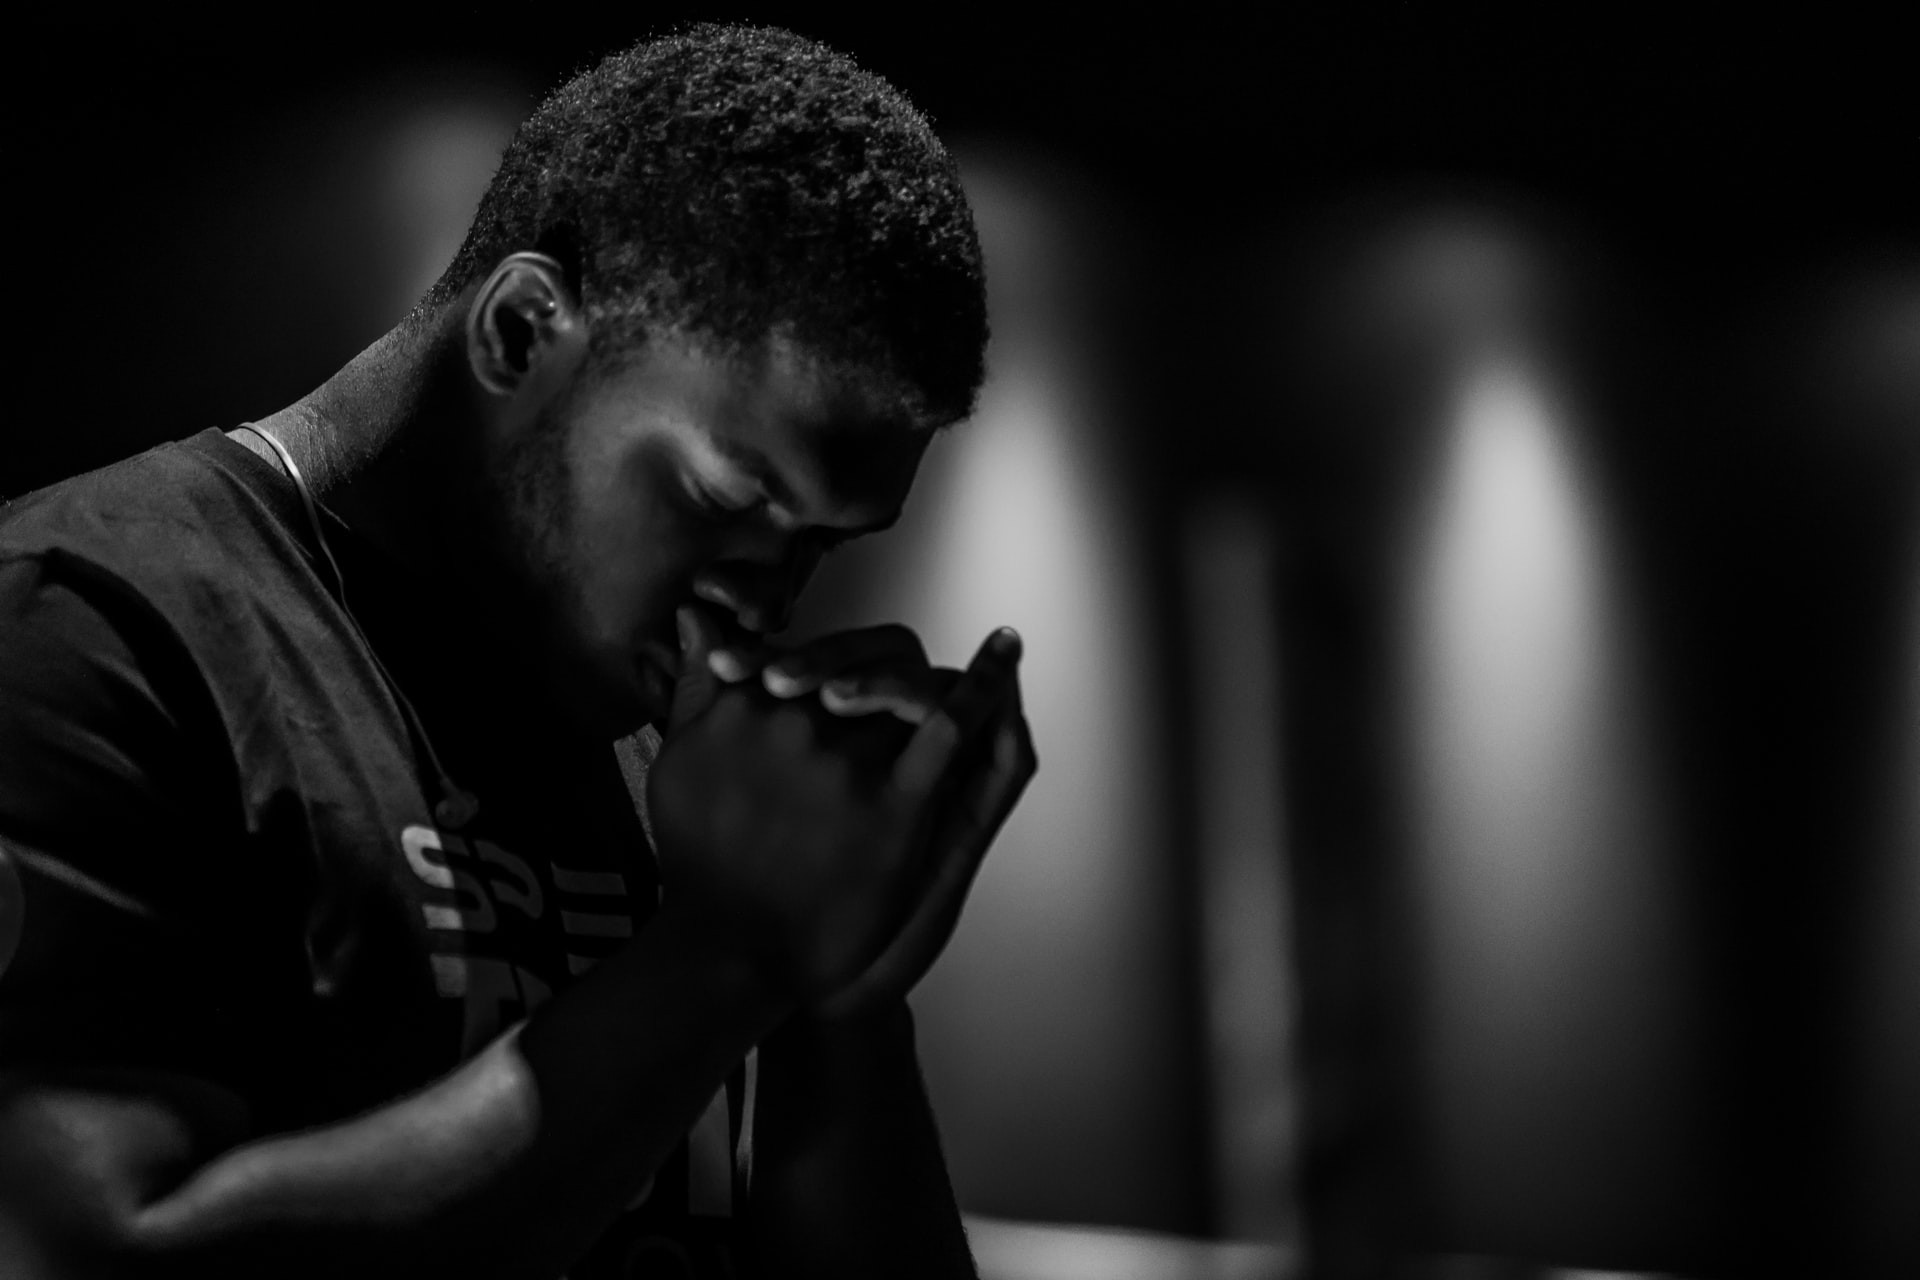 Man praying with his hands clasped together